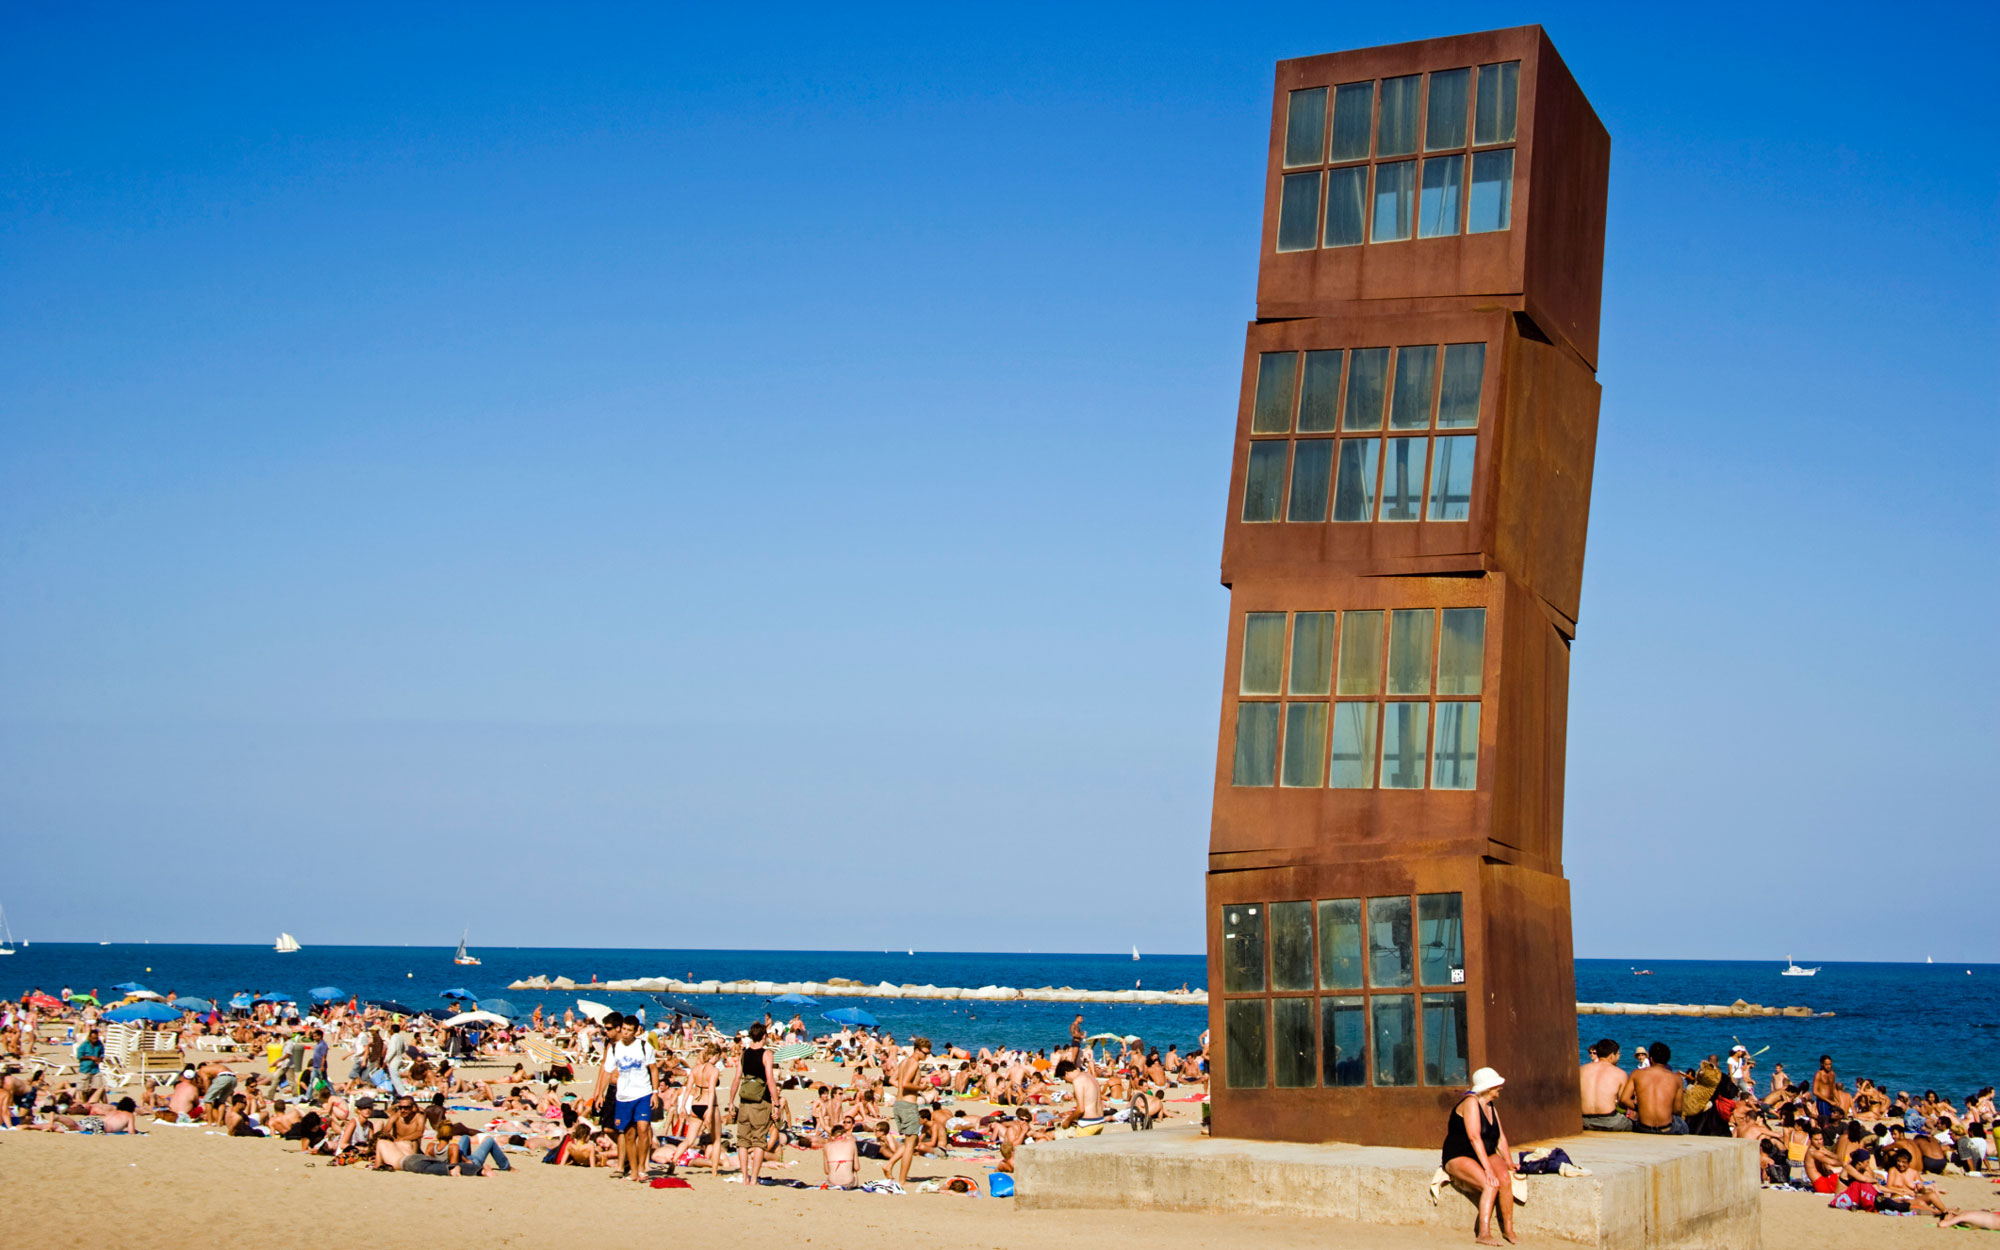 Best Beaches in Barcelona - Beach Getaways for Couples & Families